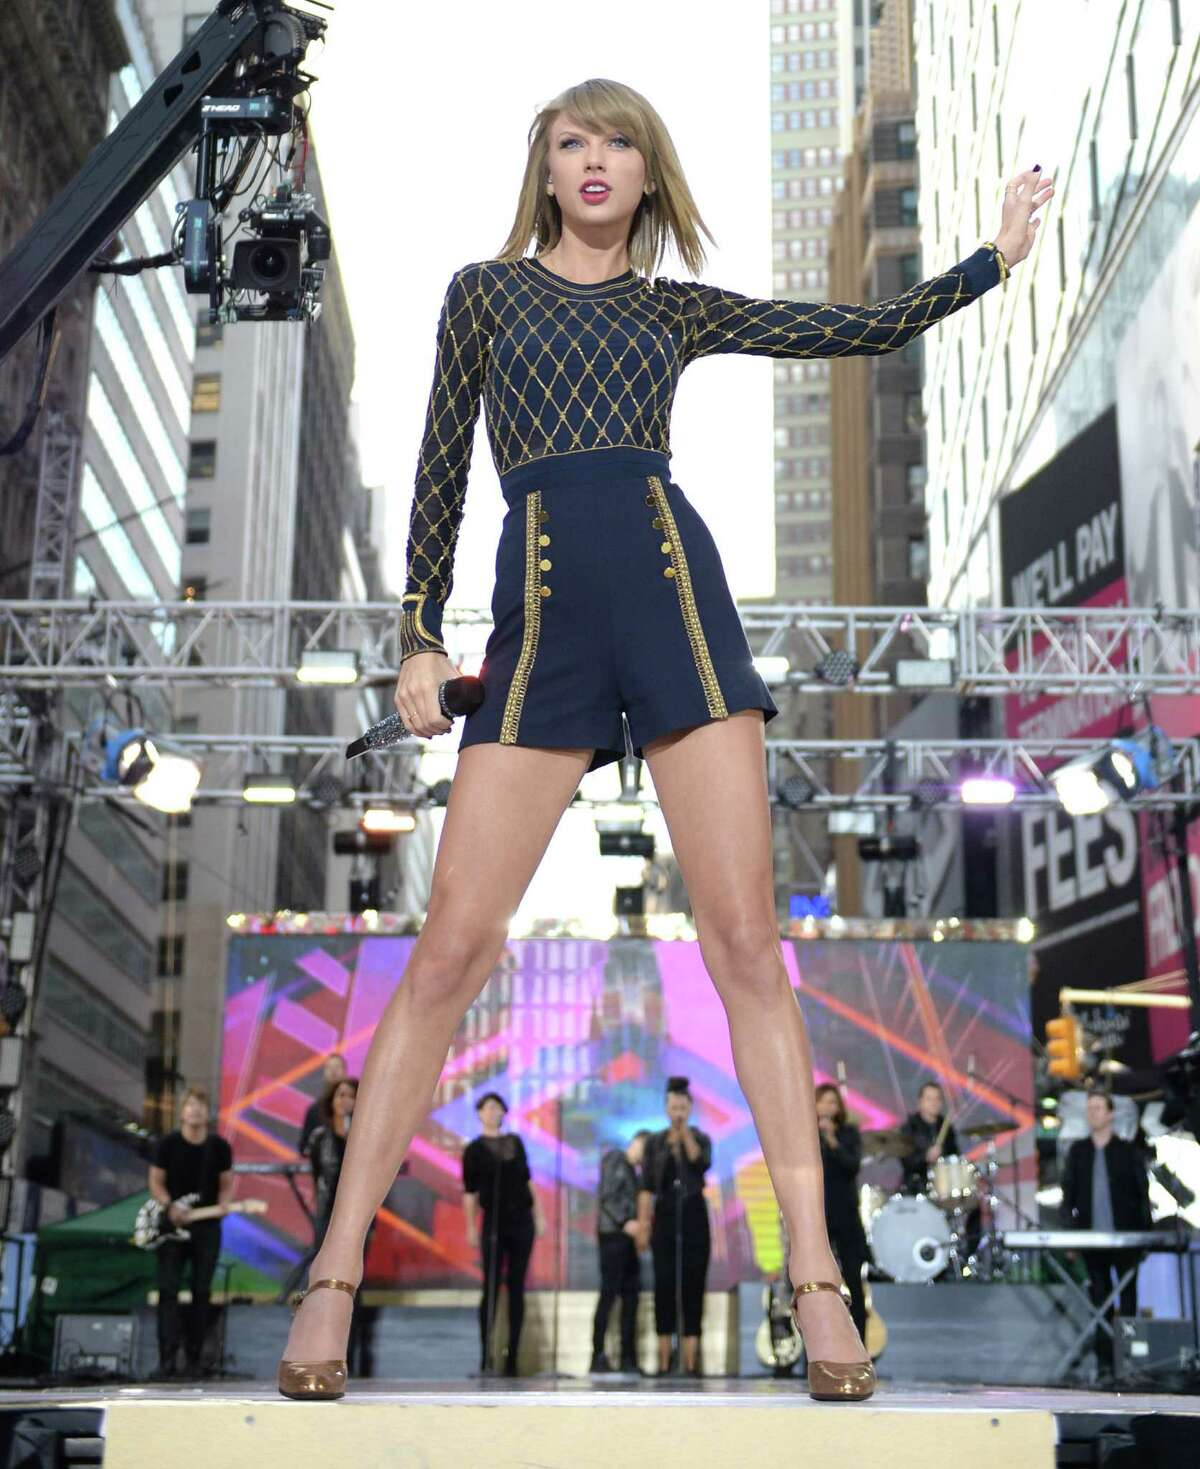 Taylor Swift performs a song from her newest release, 1989, in Times Square on